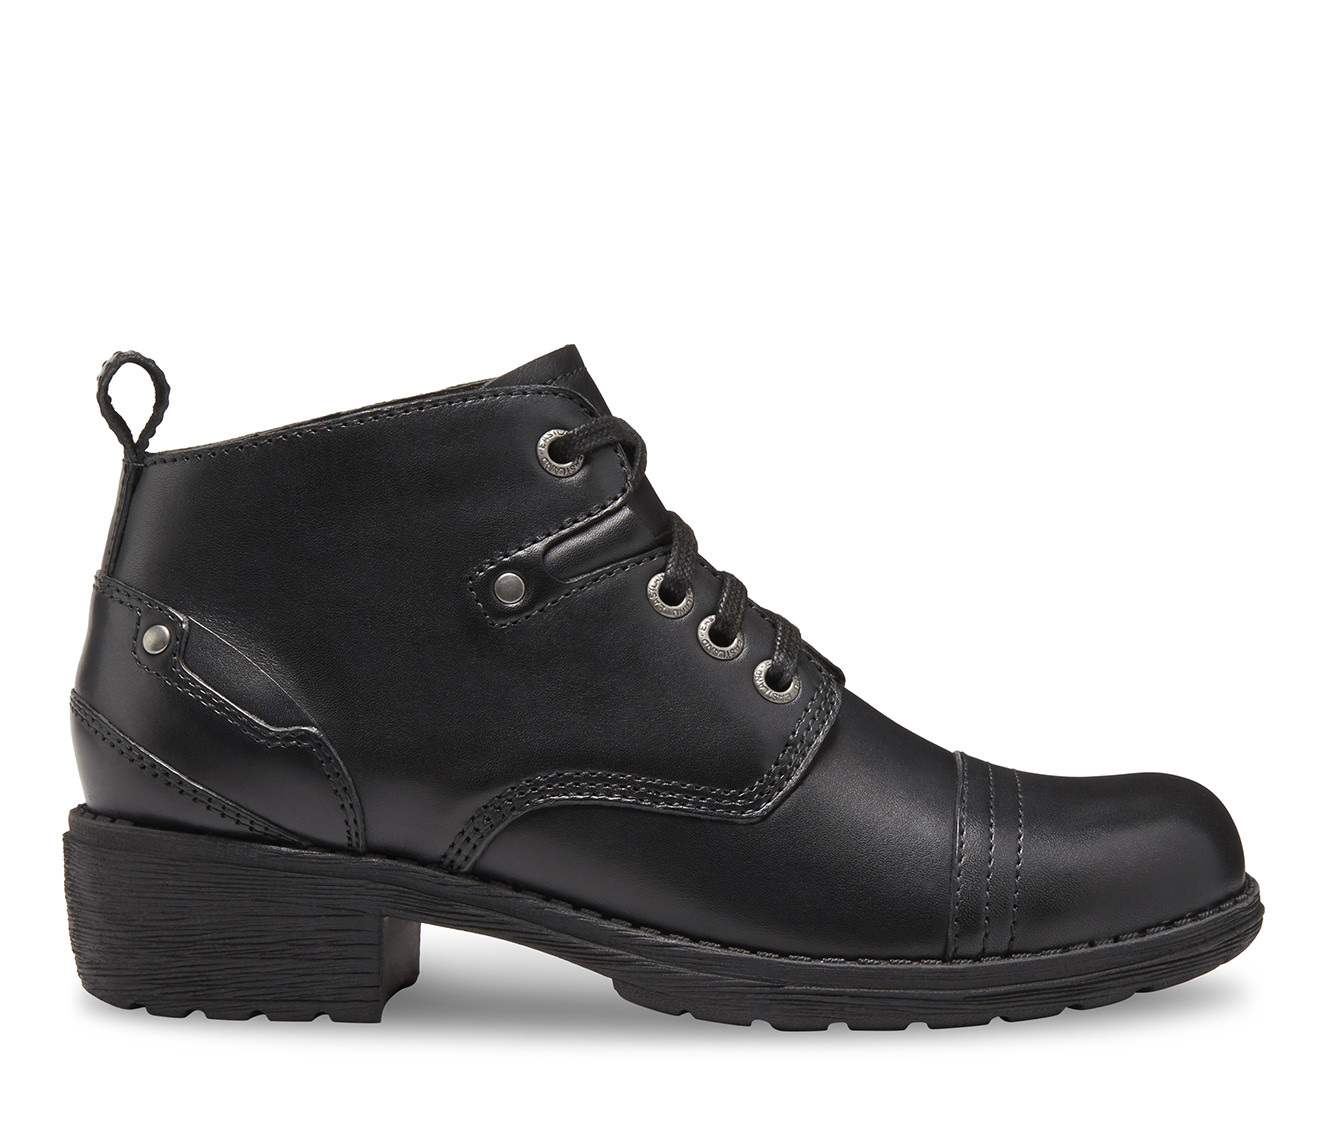 Eastland Overdrive Women's Boot (Black Leather)